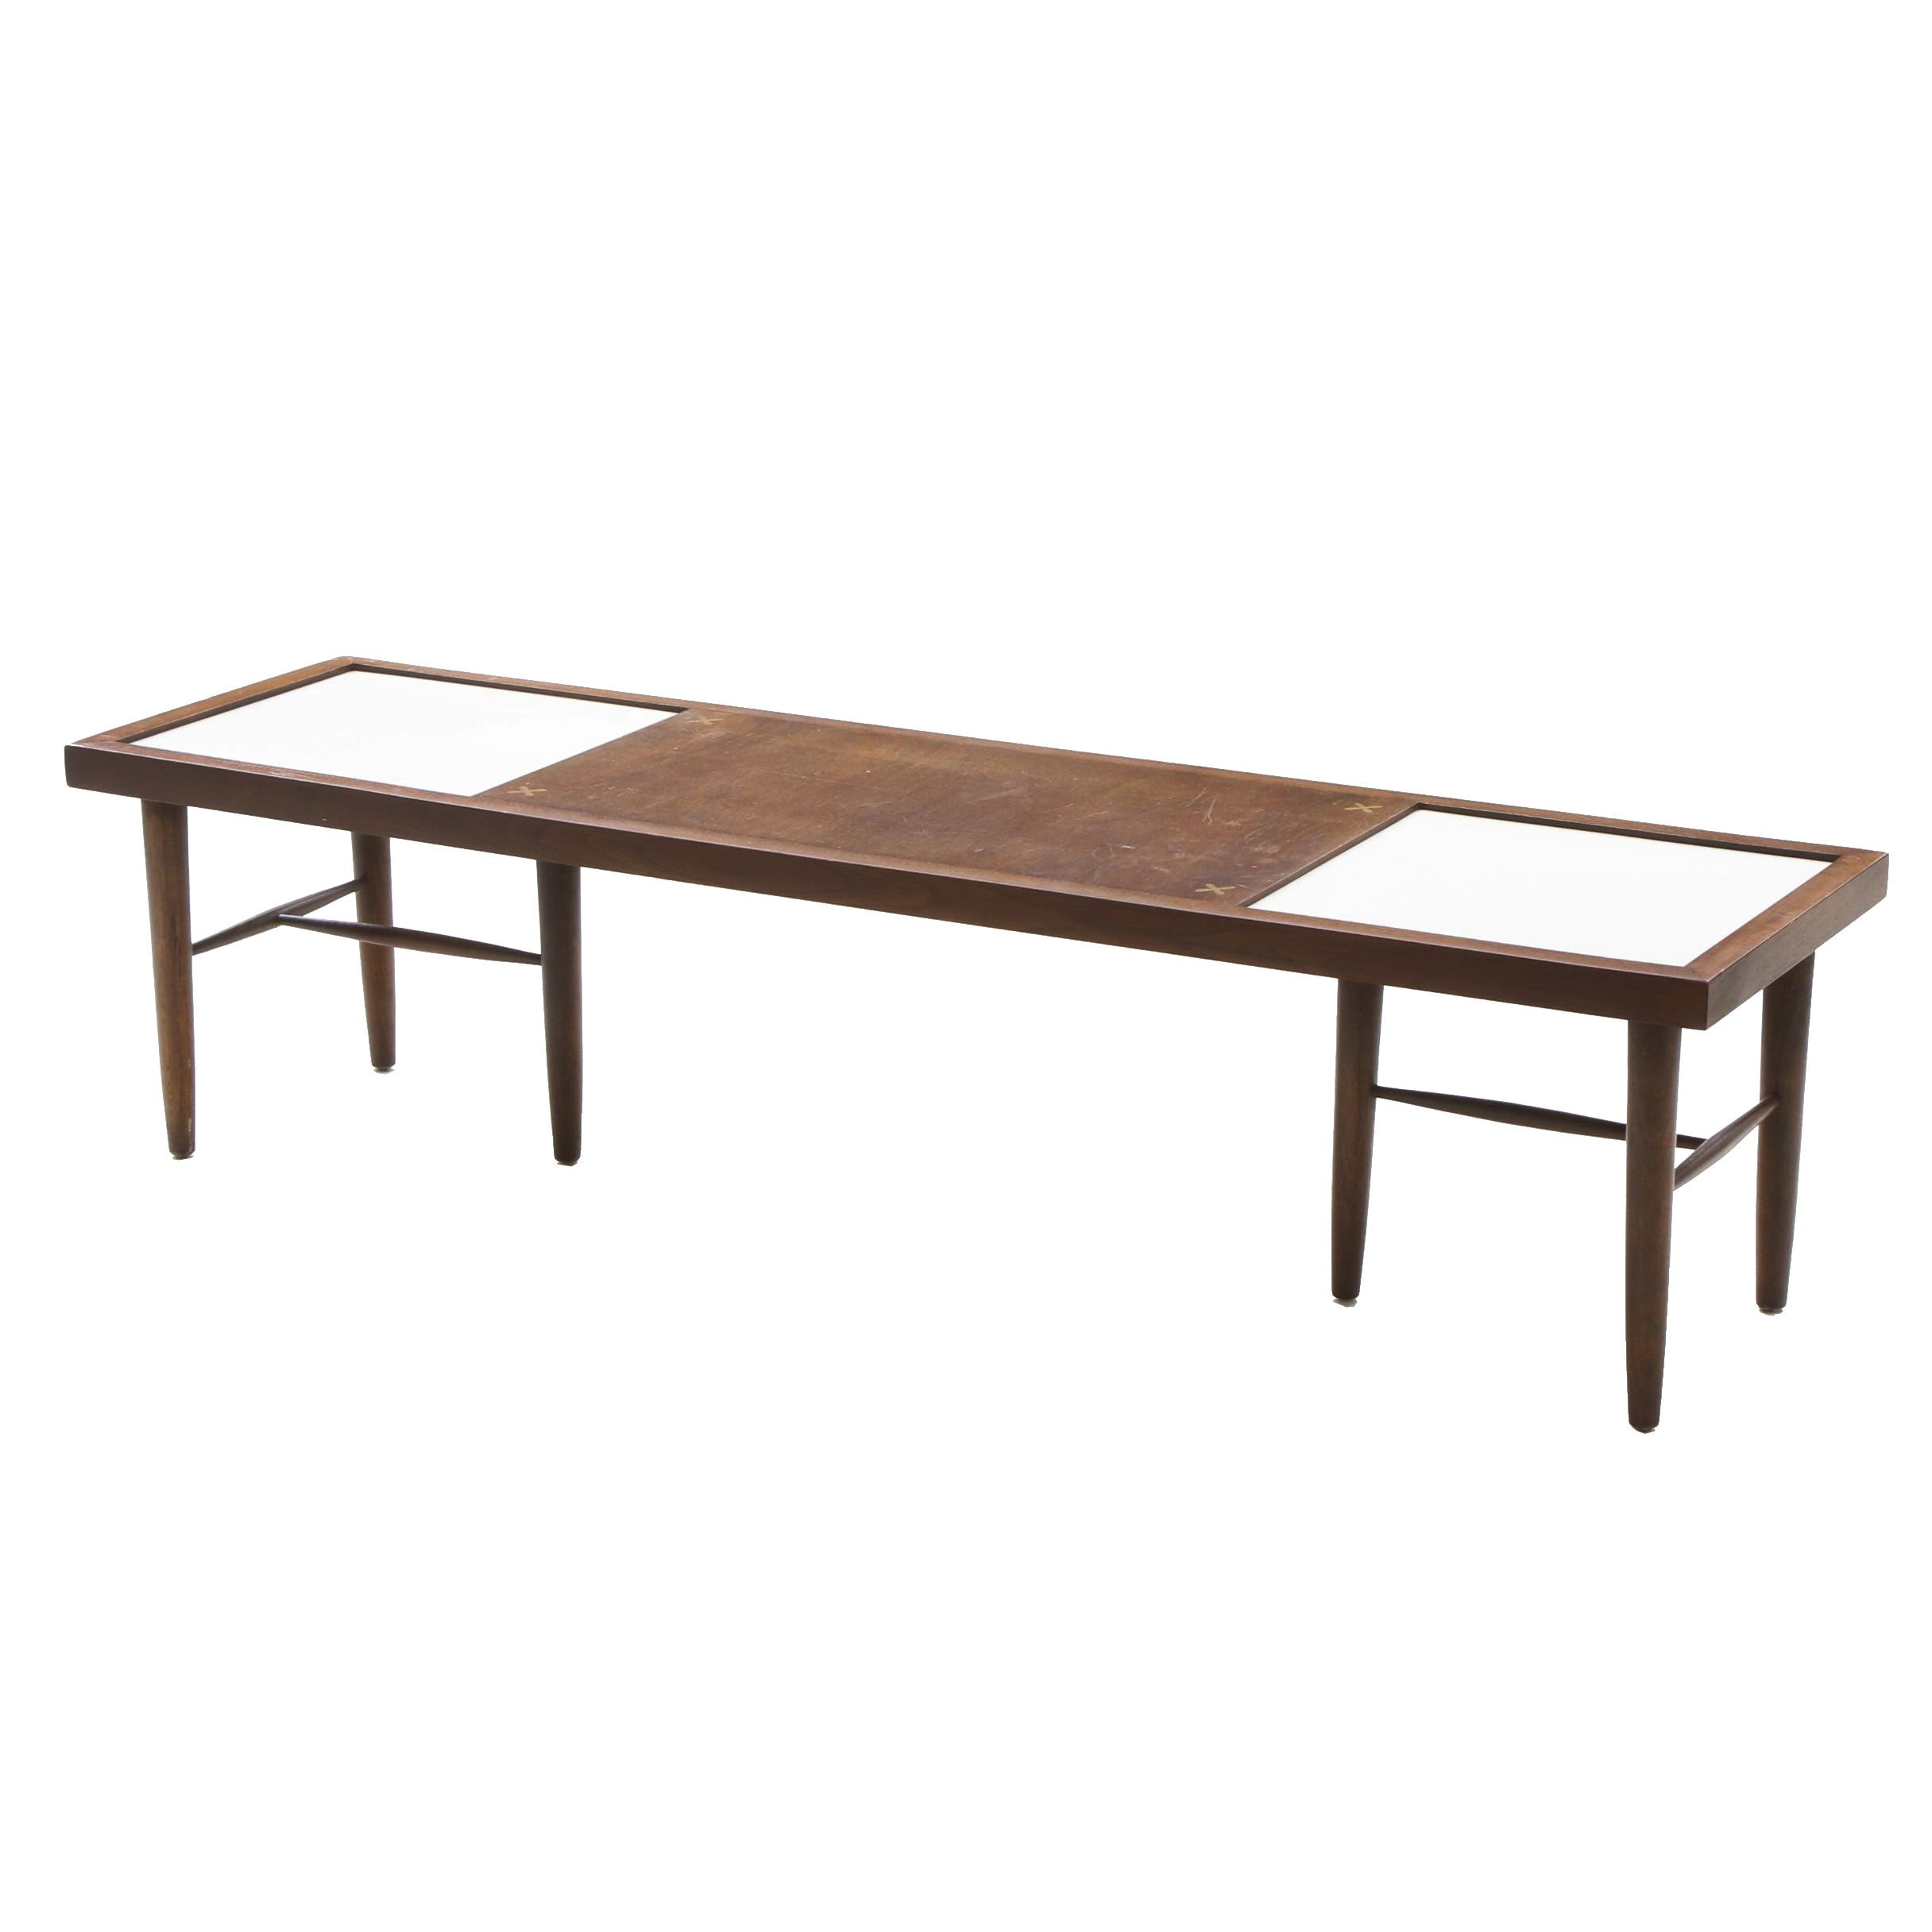 American of Martinsville Mid-Century Modern Coffee Table with Tile